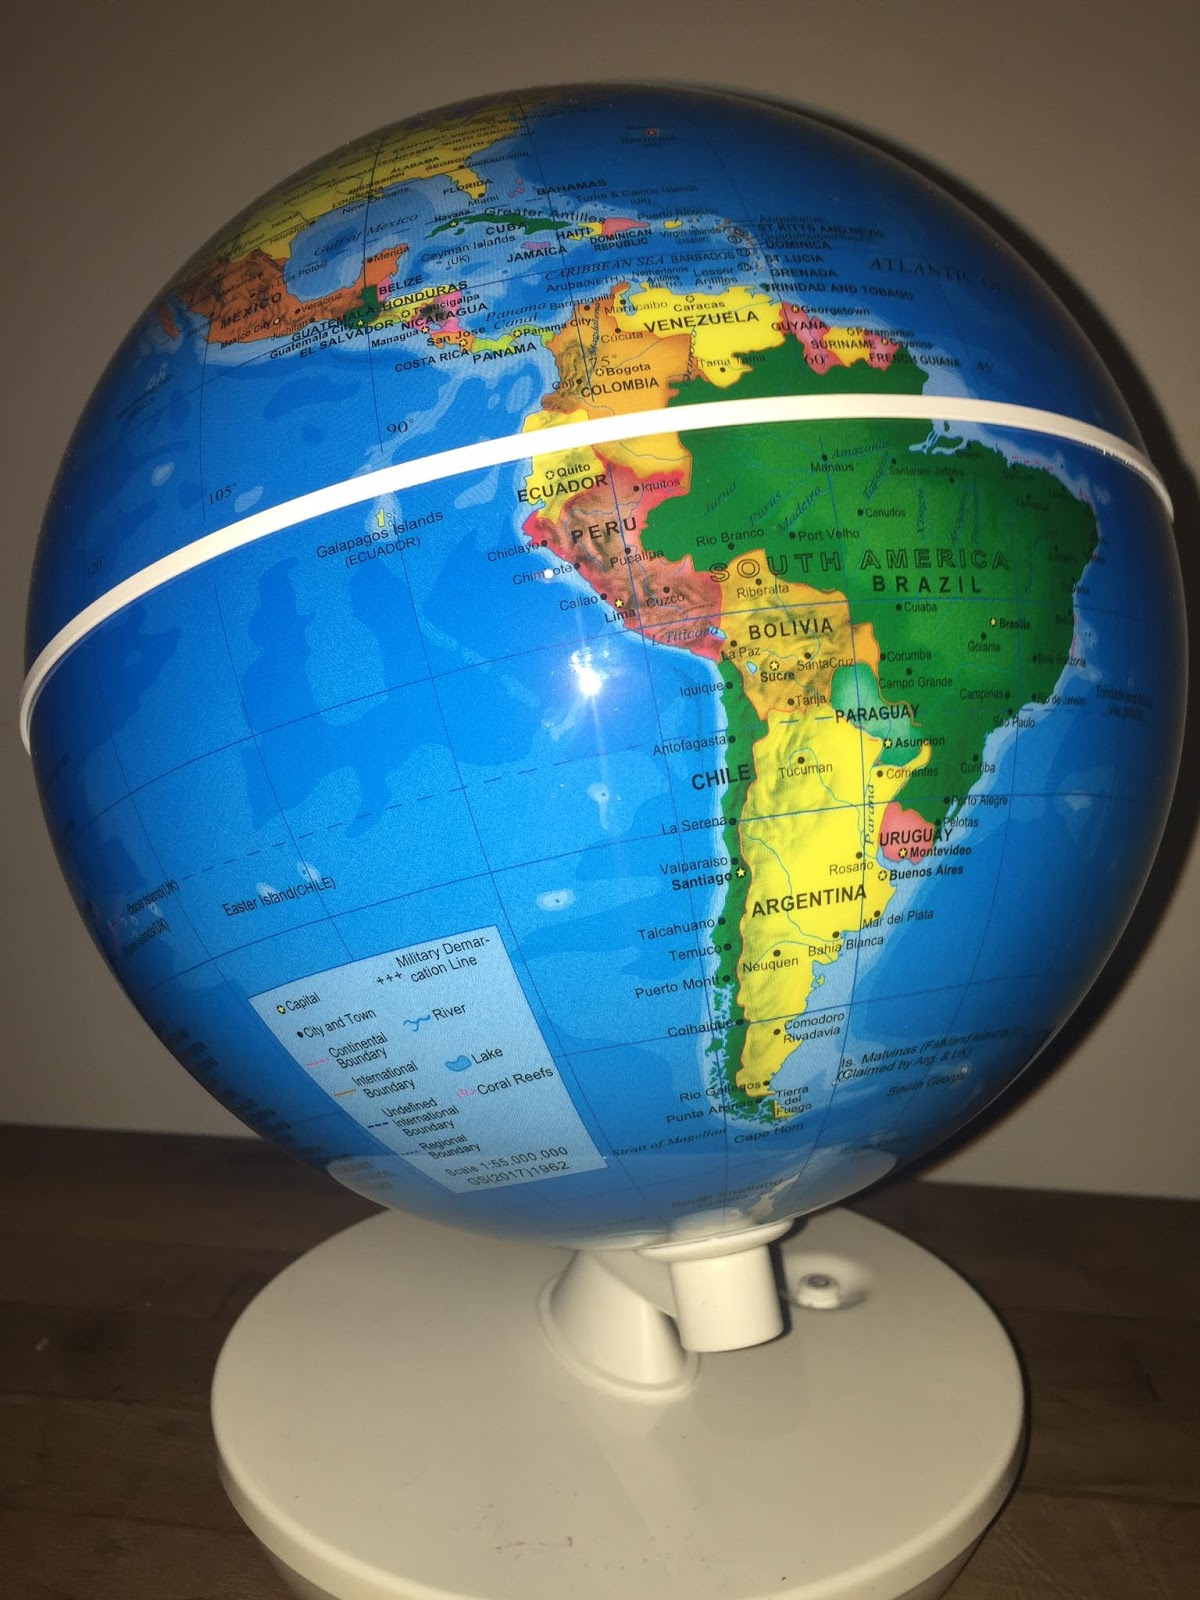 Being tillys mummy smartglobe starry 2 in 1 or day and night in day mode the globe shows all of the countries of the world and political borders it also shows capital cities and the oceans gumiabroncs Choice Image